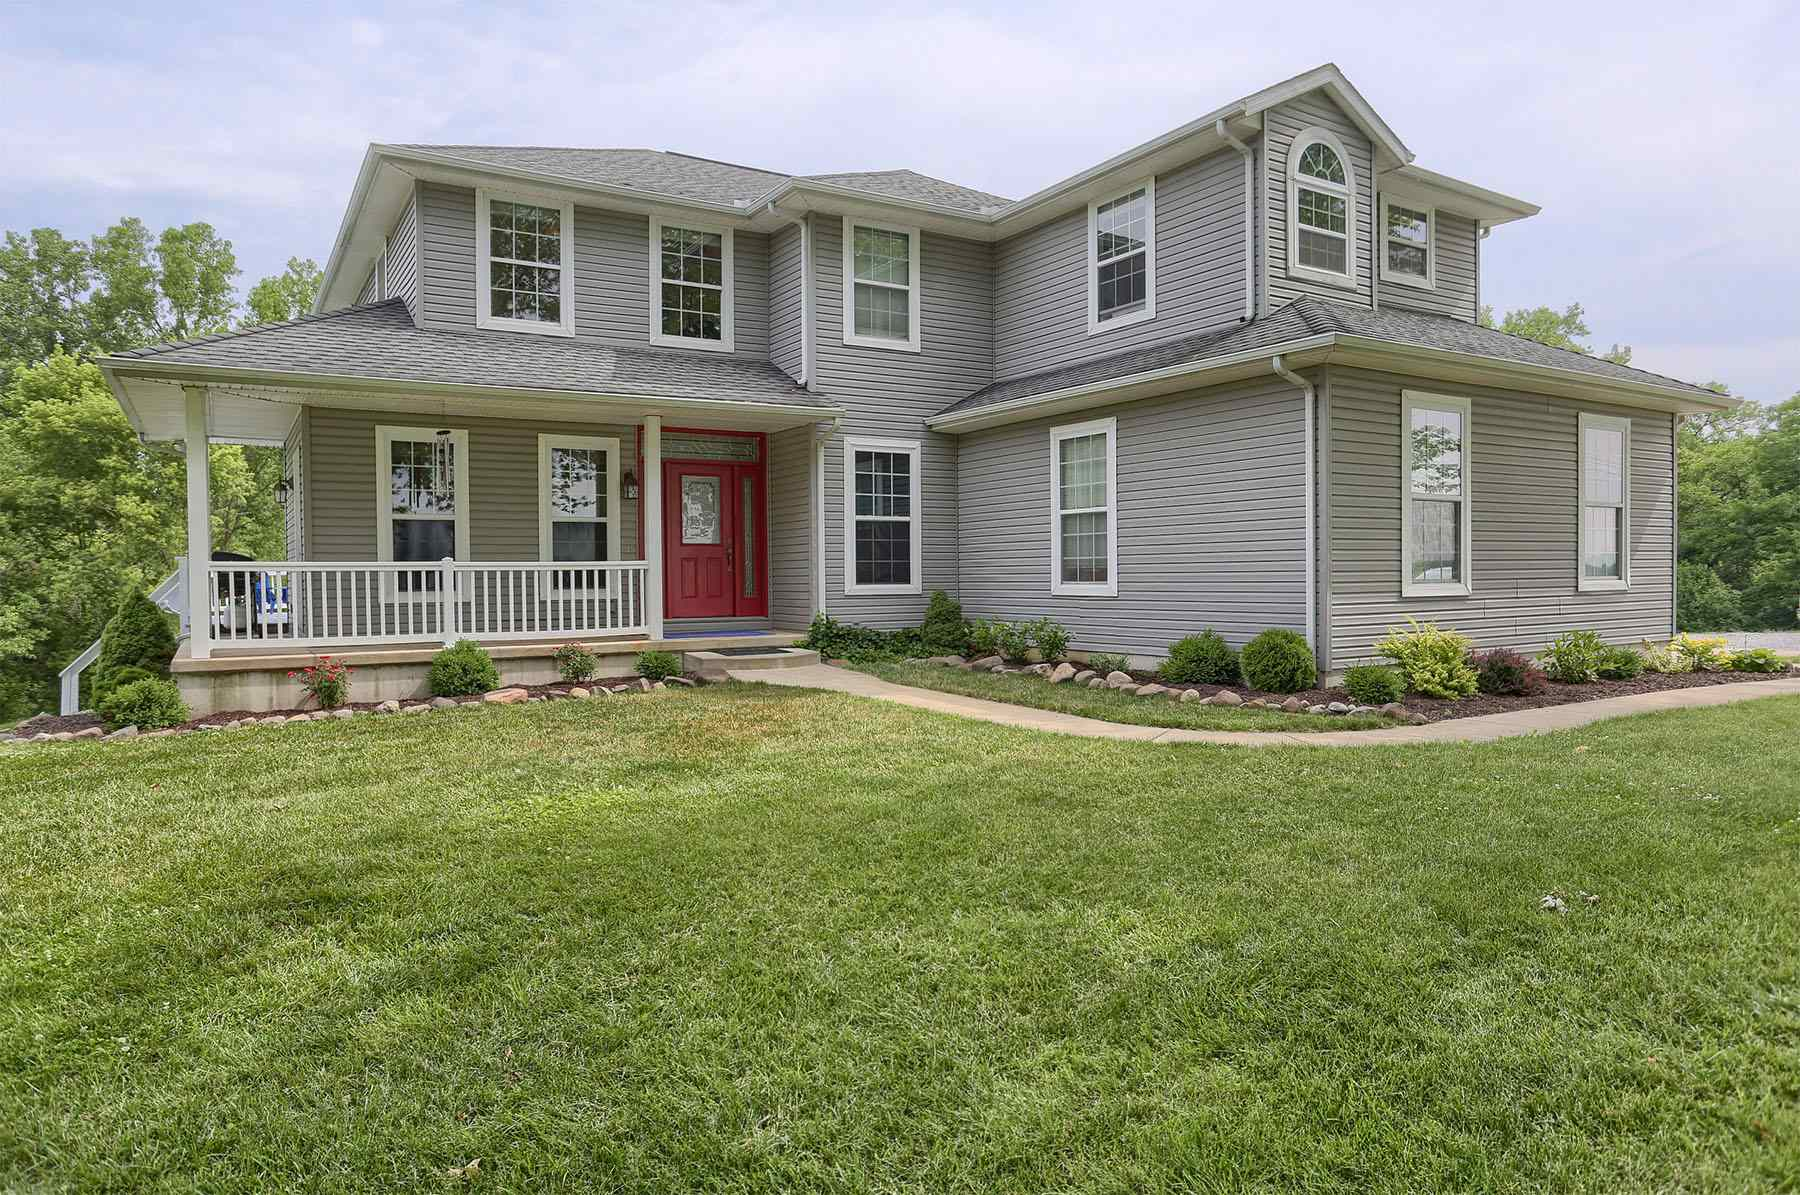 3394 E 1300 N, North Manchester, IN 46926